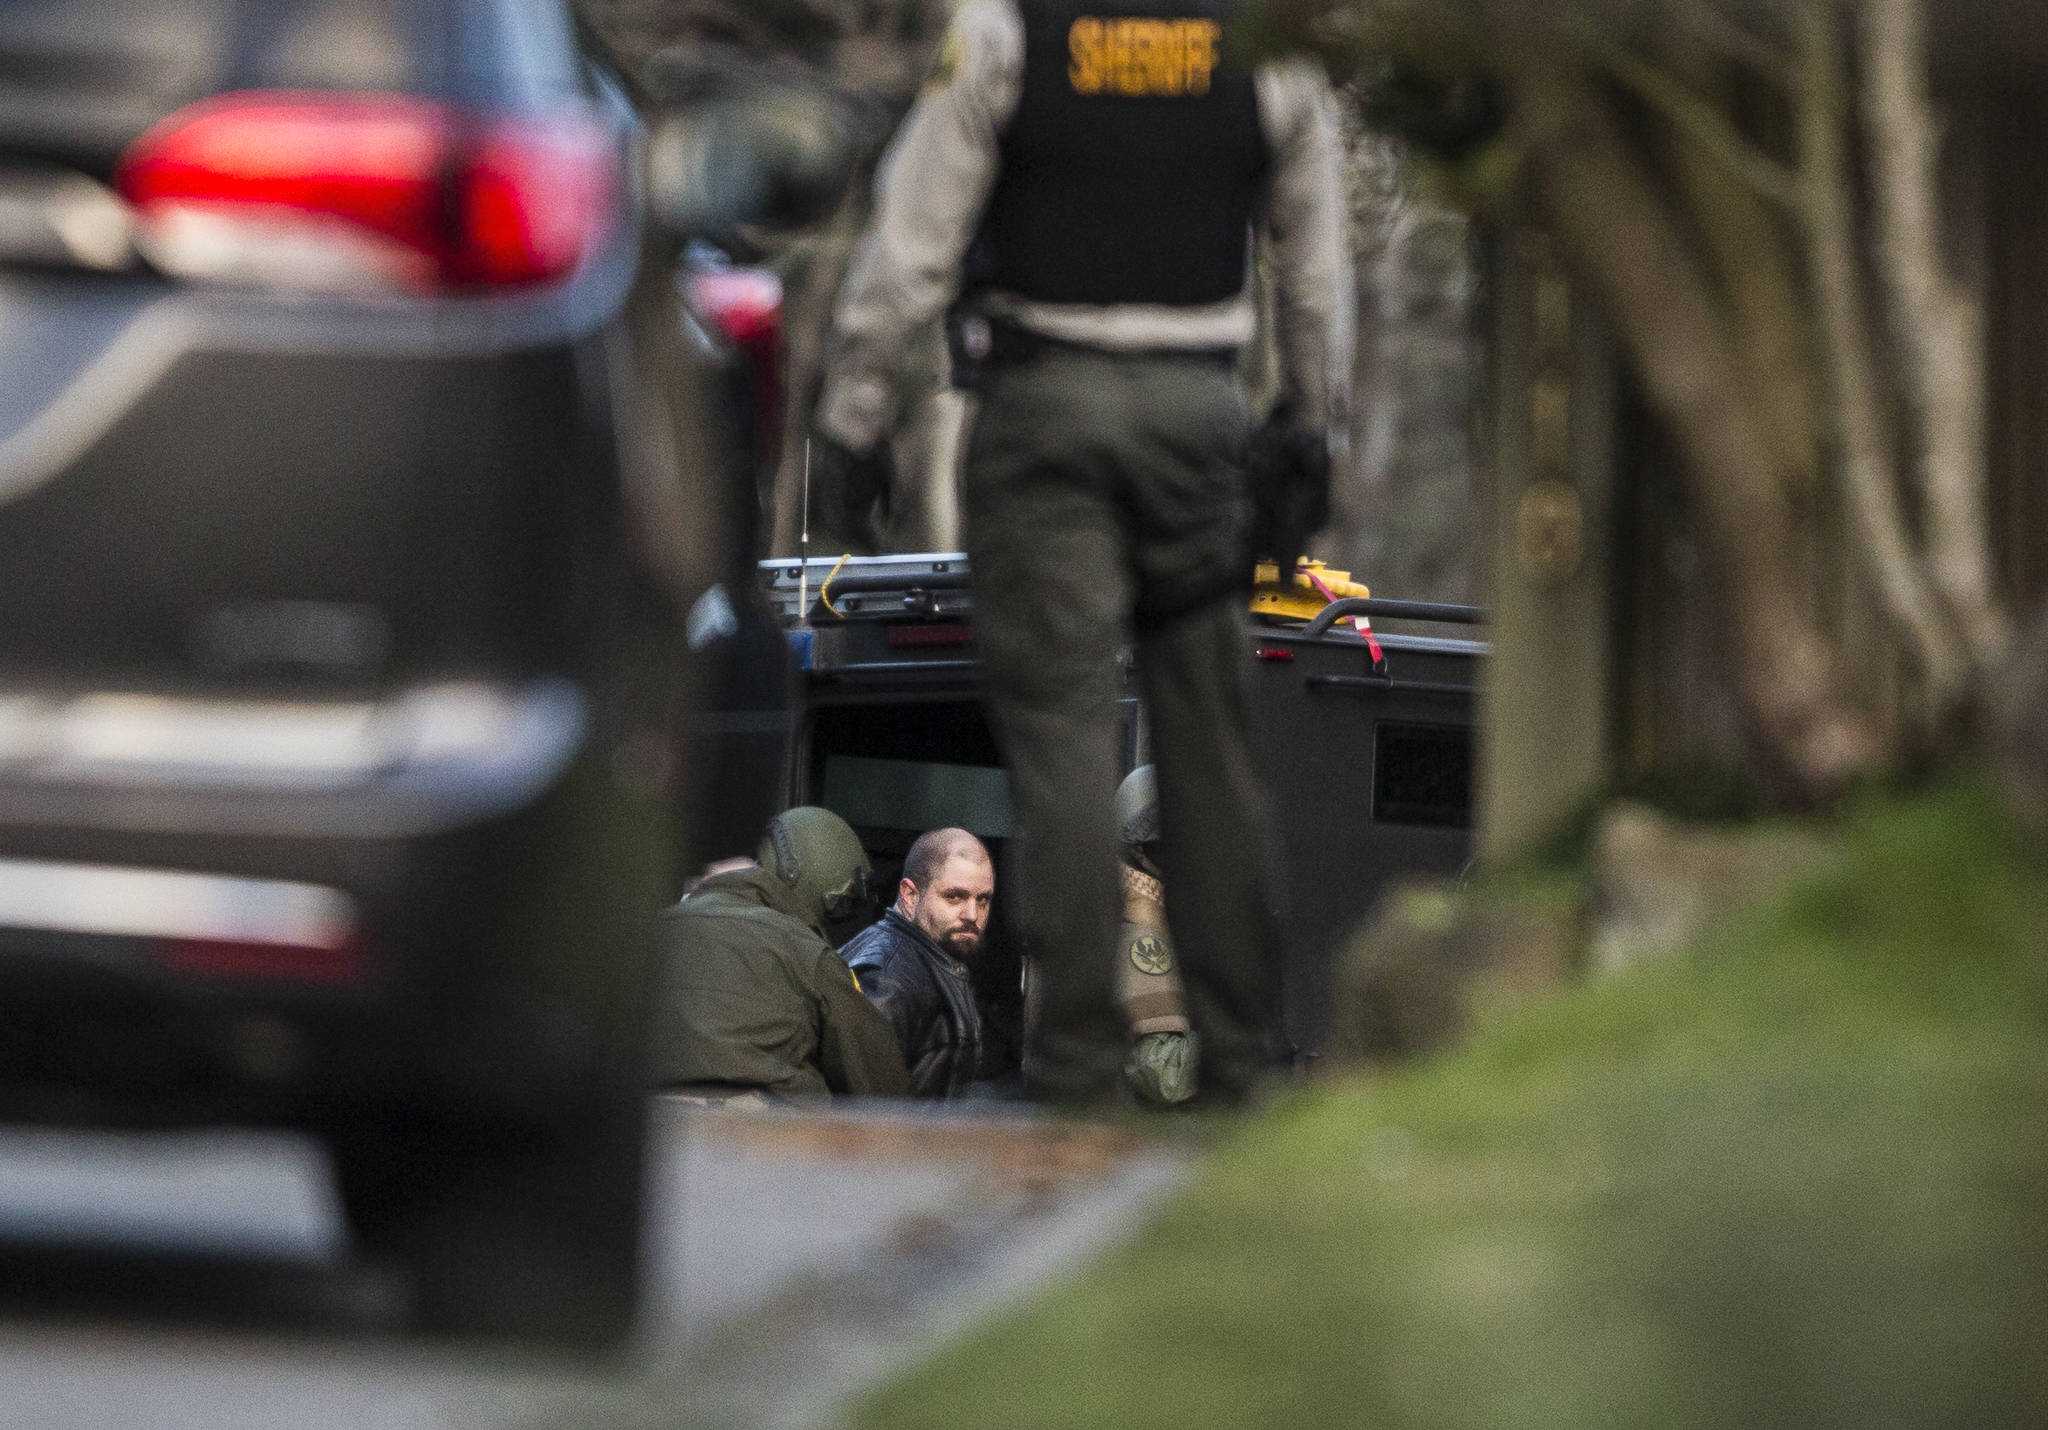 A 34-year-old man who barricaded himself in a home while armed was arrested Sunday near Lynnwood. (Olivia Vanni / The Herald)